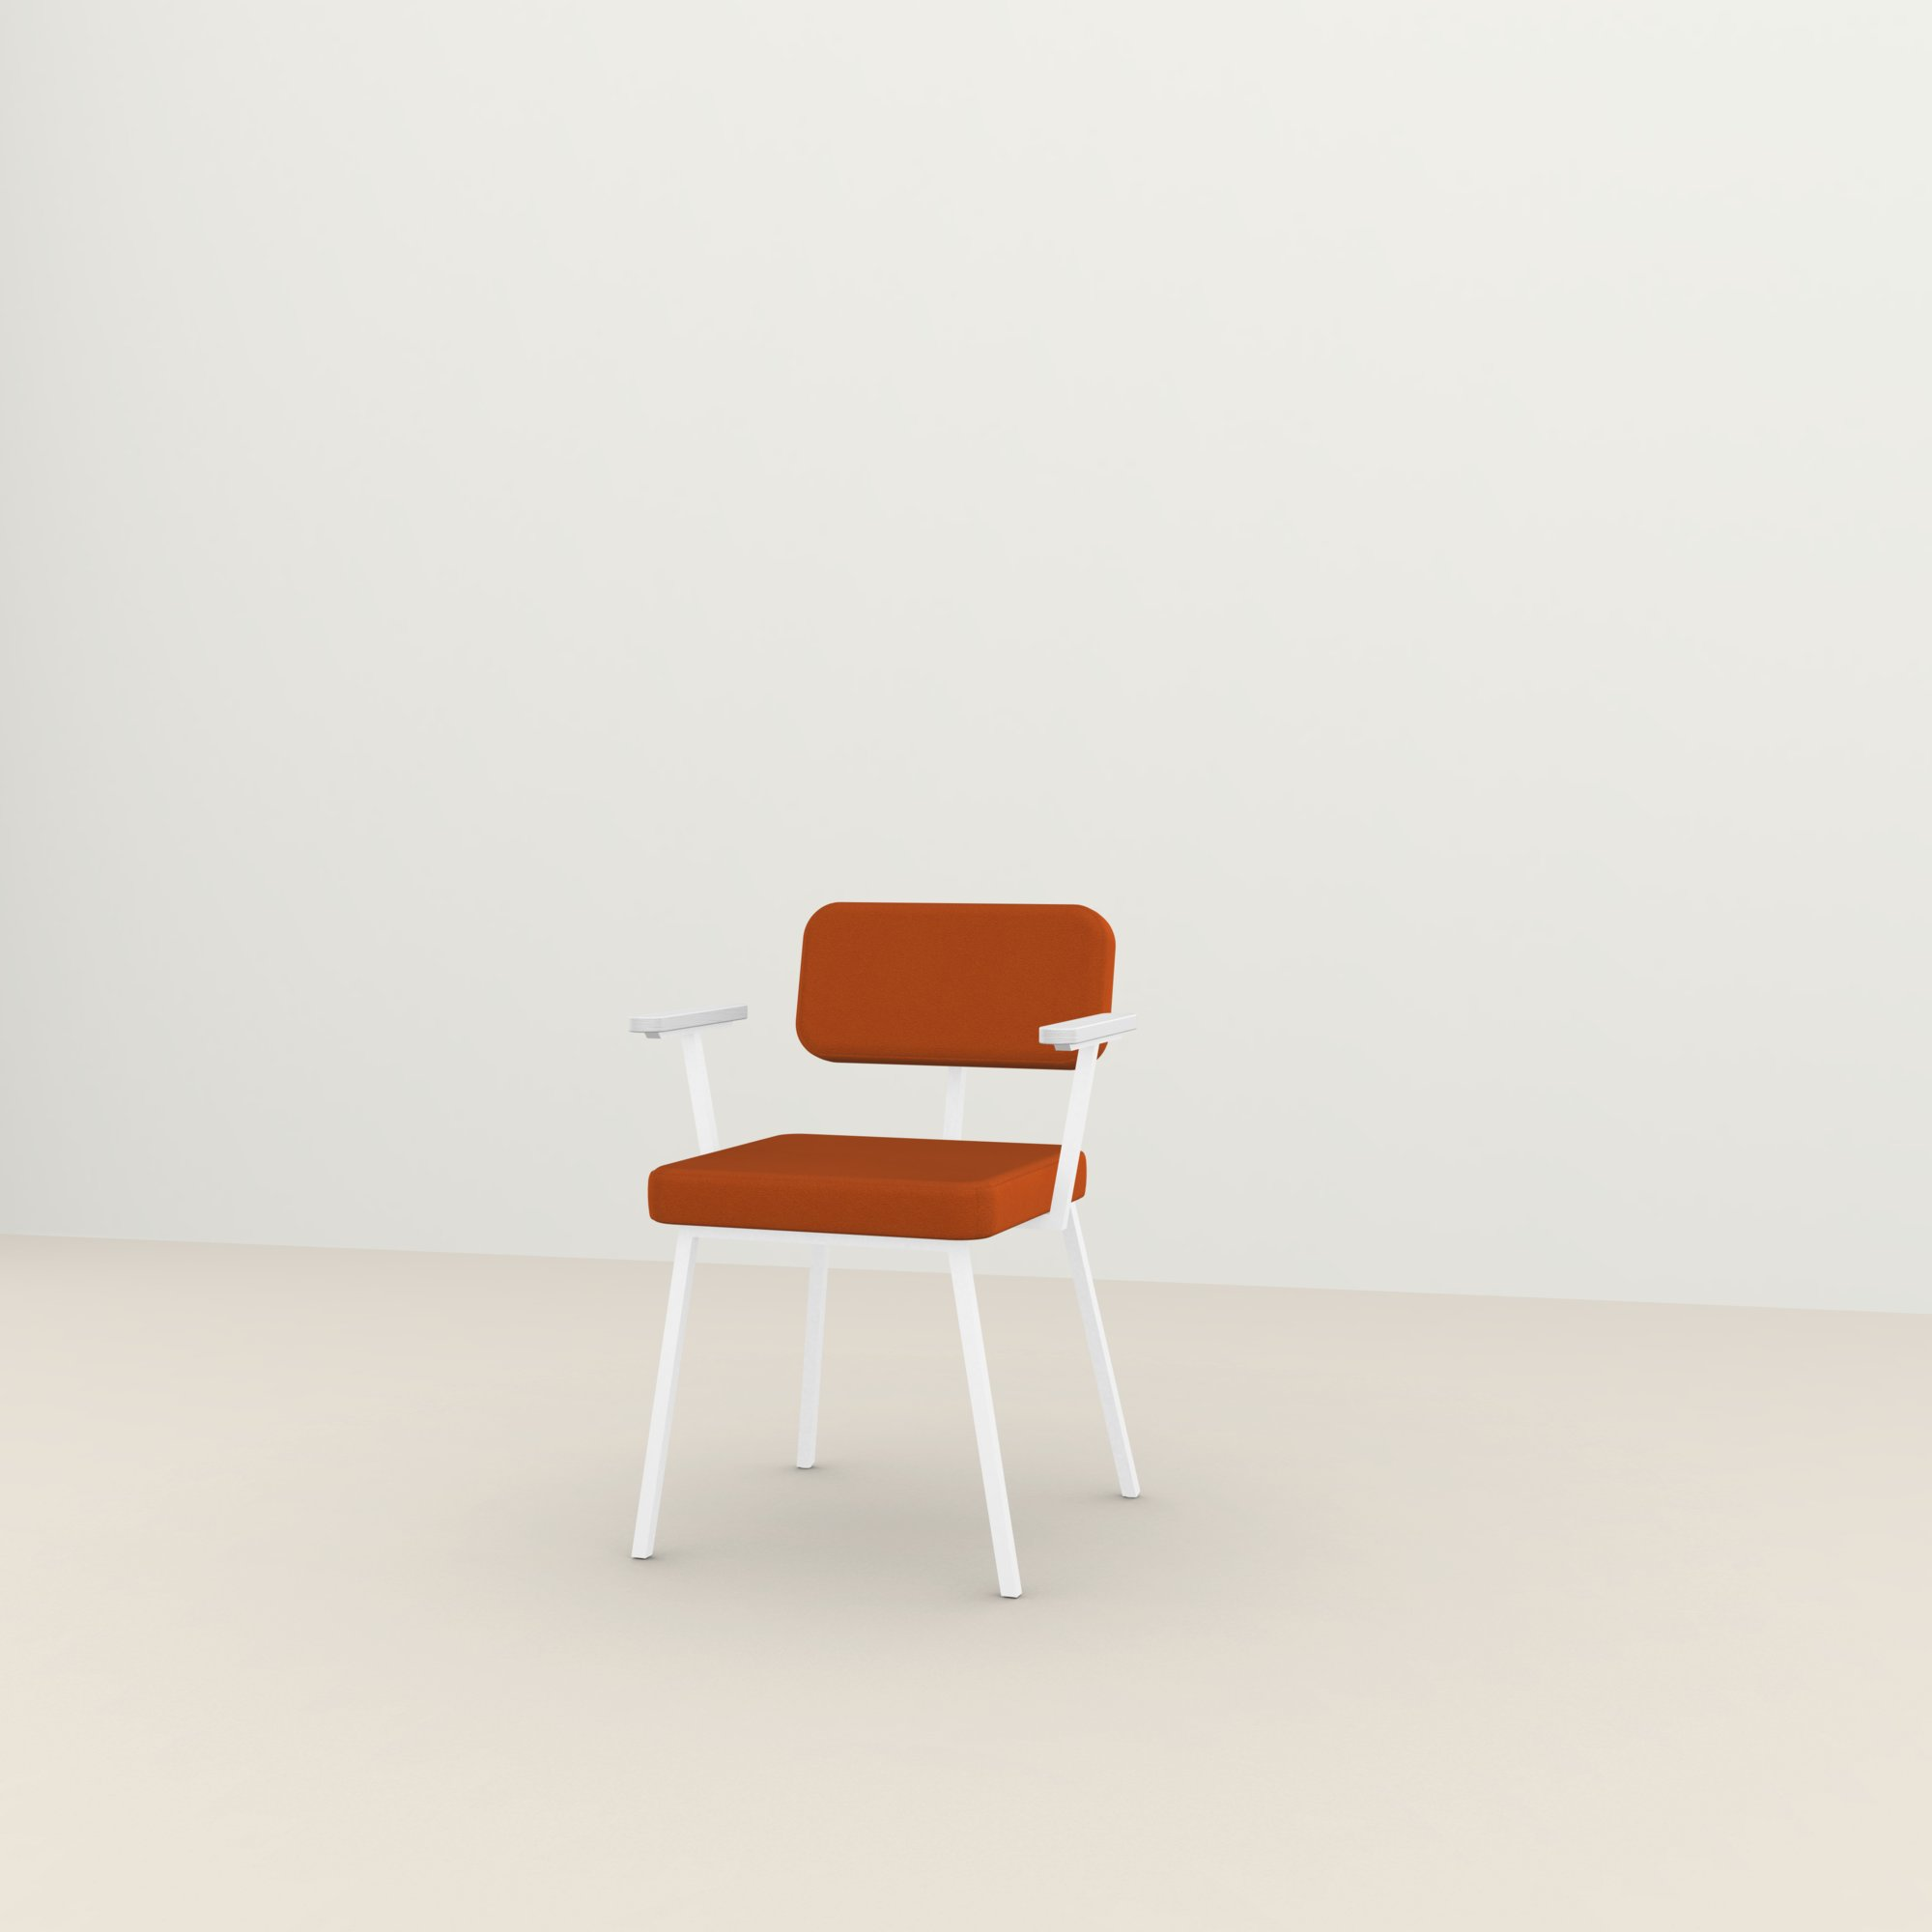 Design eetkamerstoel | Ode Chair with armrest tonus4 554 | Studio HENK |